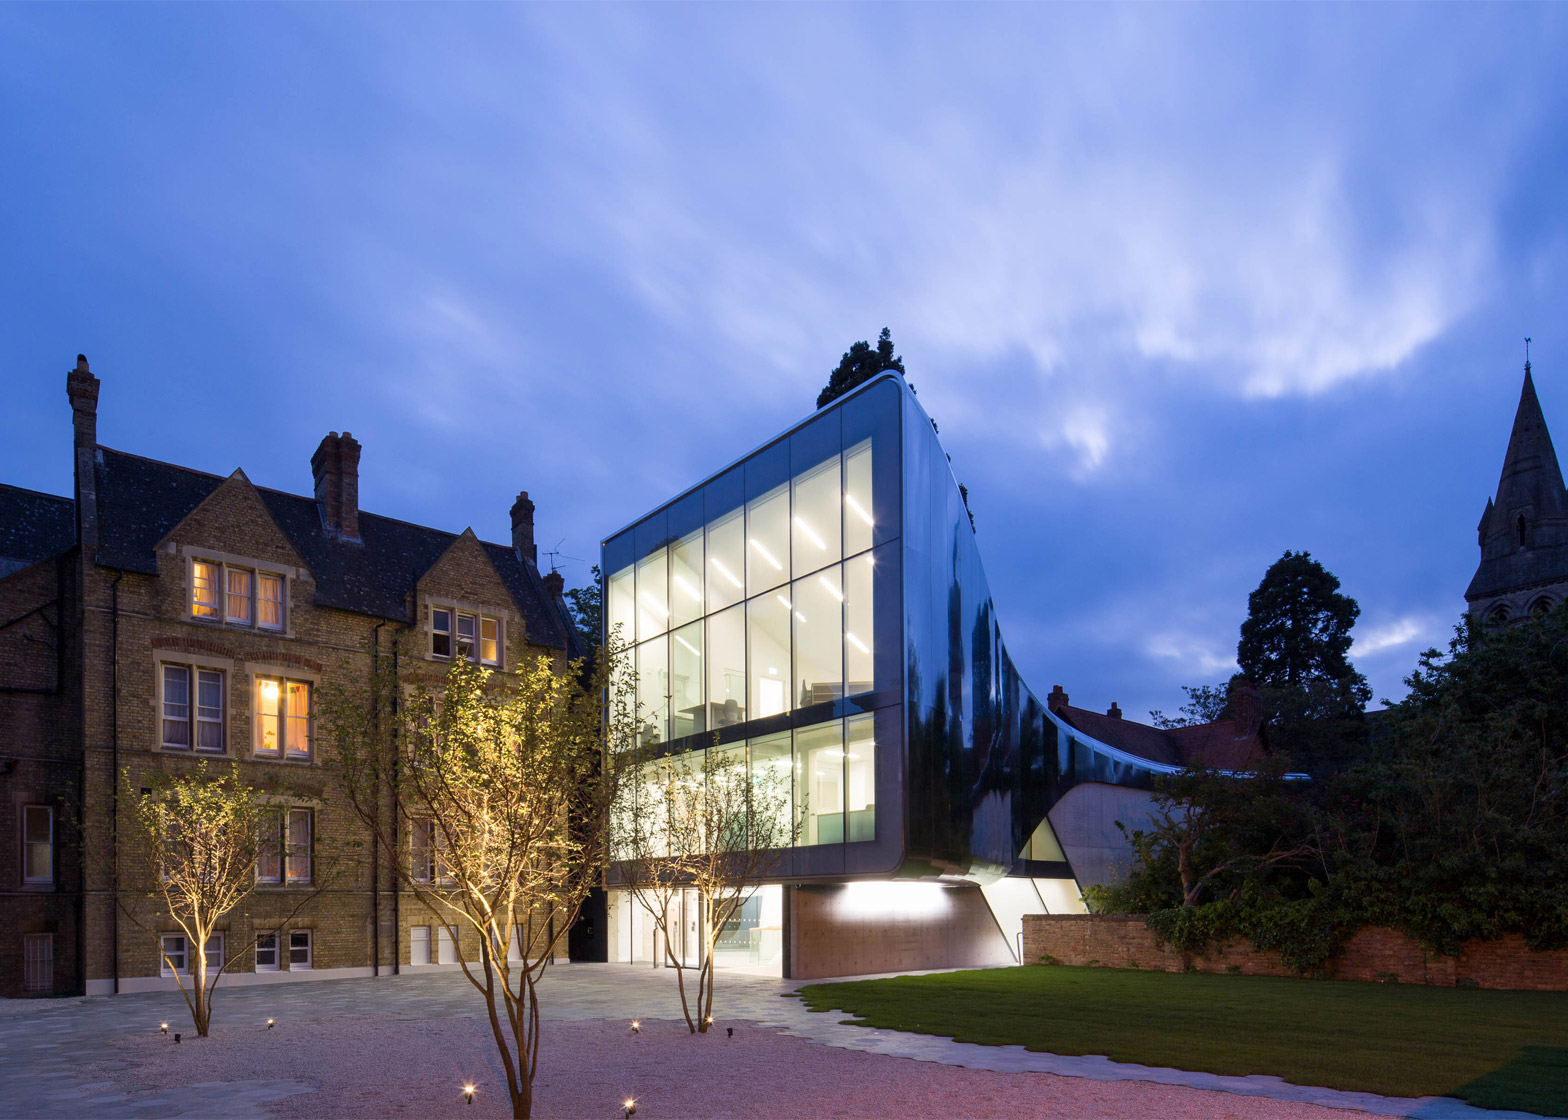 Investcorp Building for Oxford University's Middle East Centre at St Antony's College, Oxford, United Kingdom, by Zaha Hadid Architects